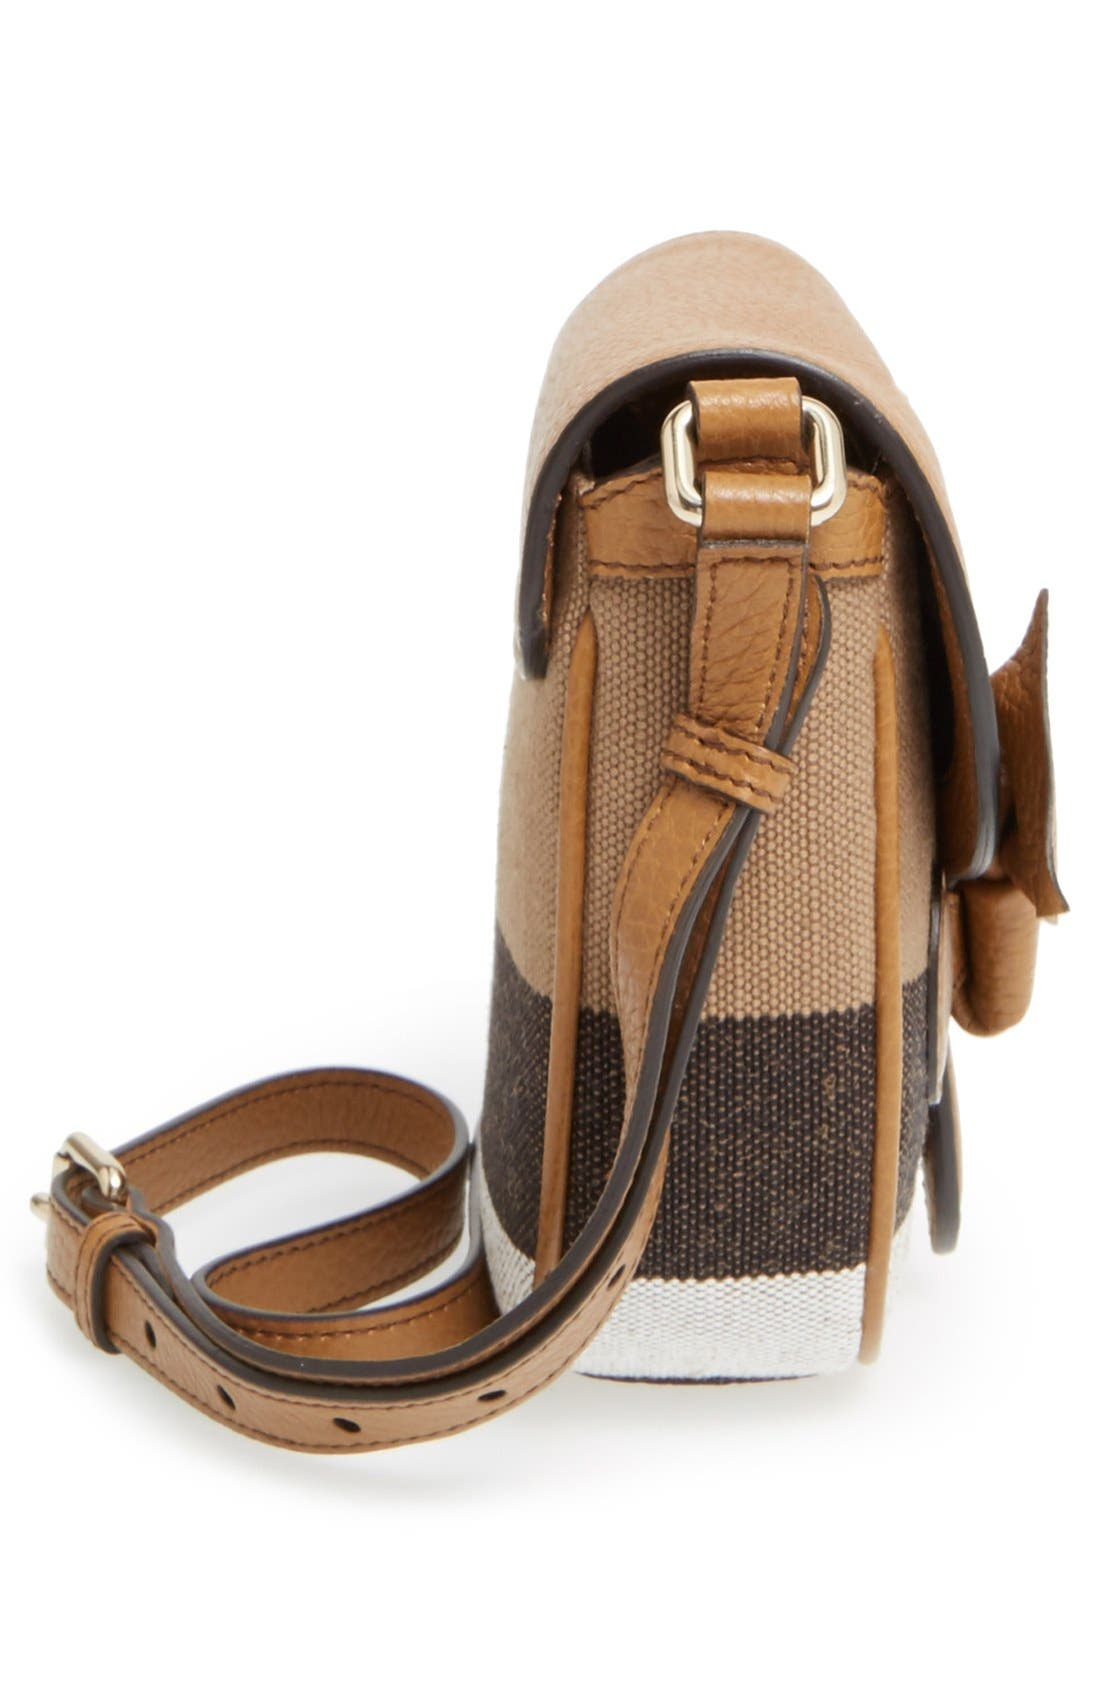 BURBERRY,                             Canvas Check & Leather Crossbody Bag,                             Alternate thumbnail 4, color,                             251